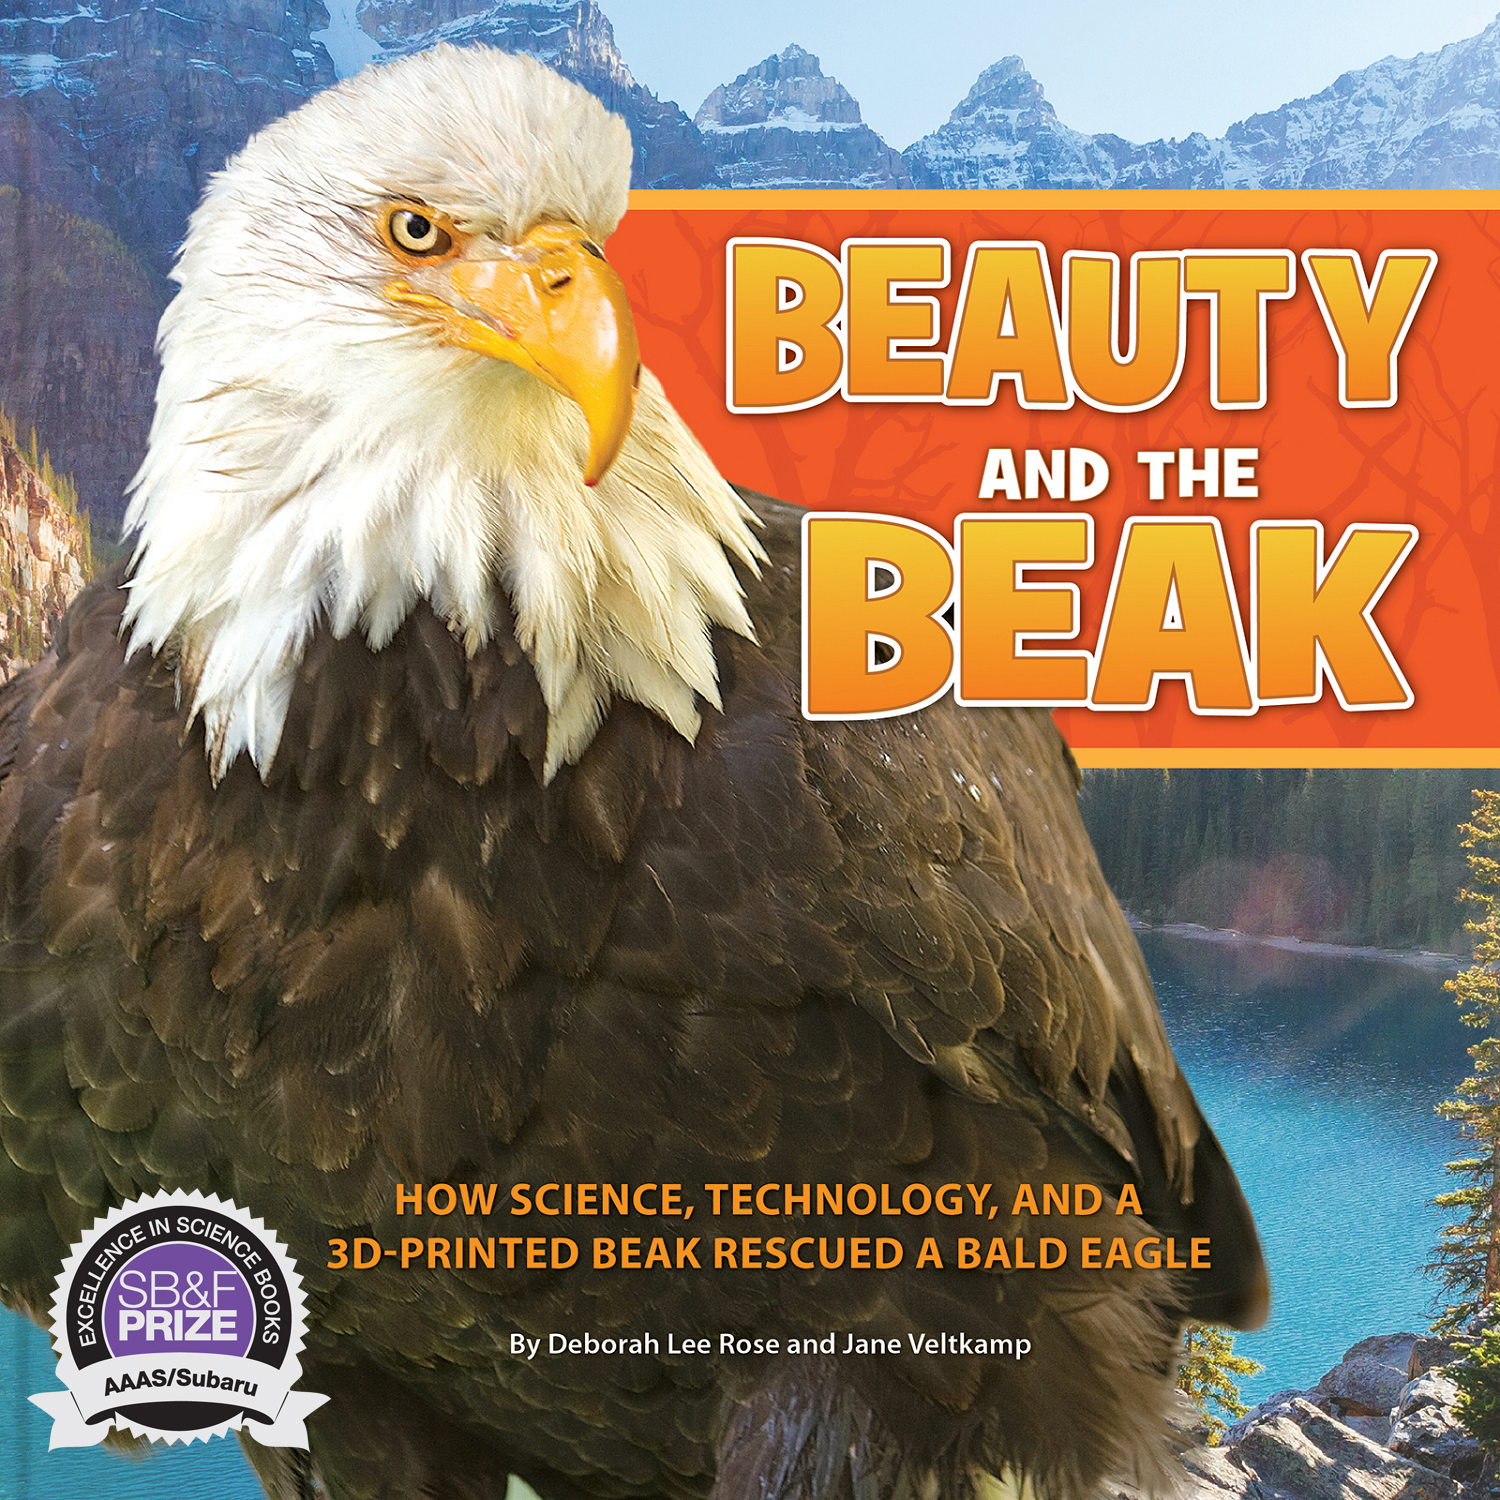 BEAUTY-AND-THE-BEAK_label.jpg